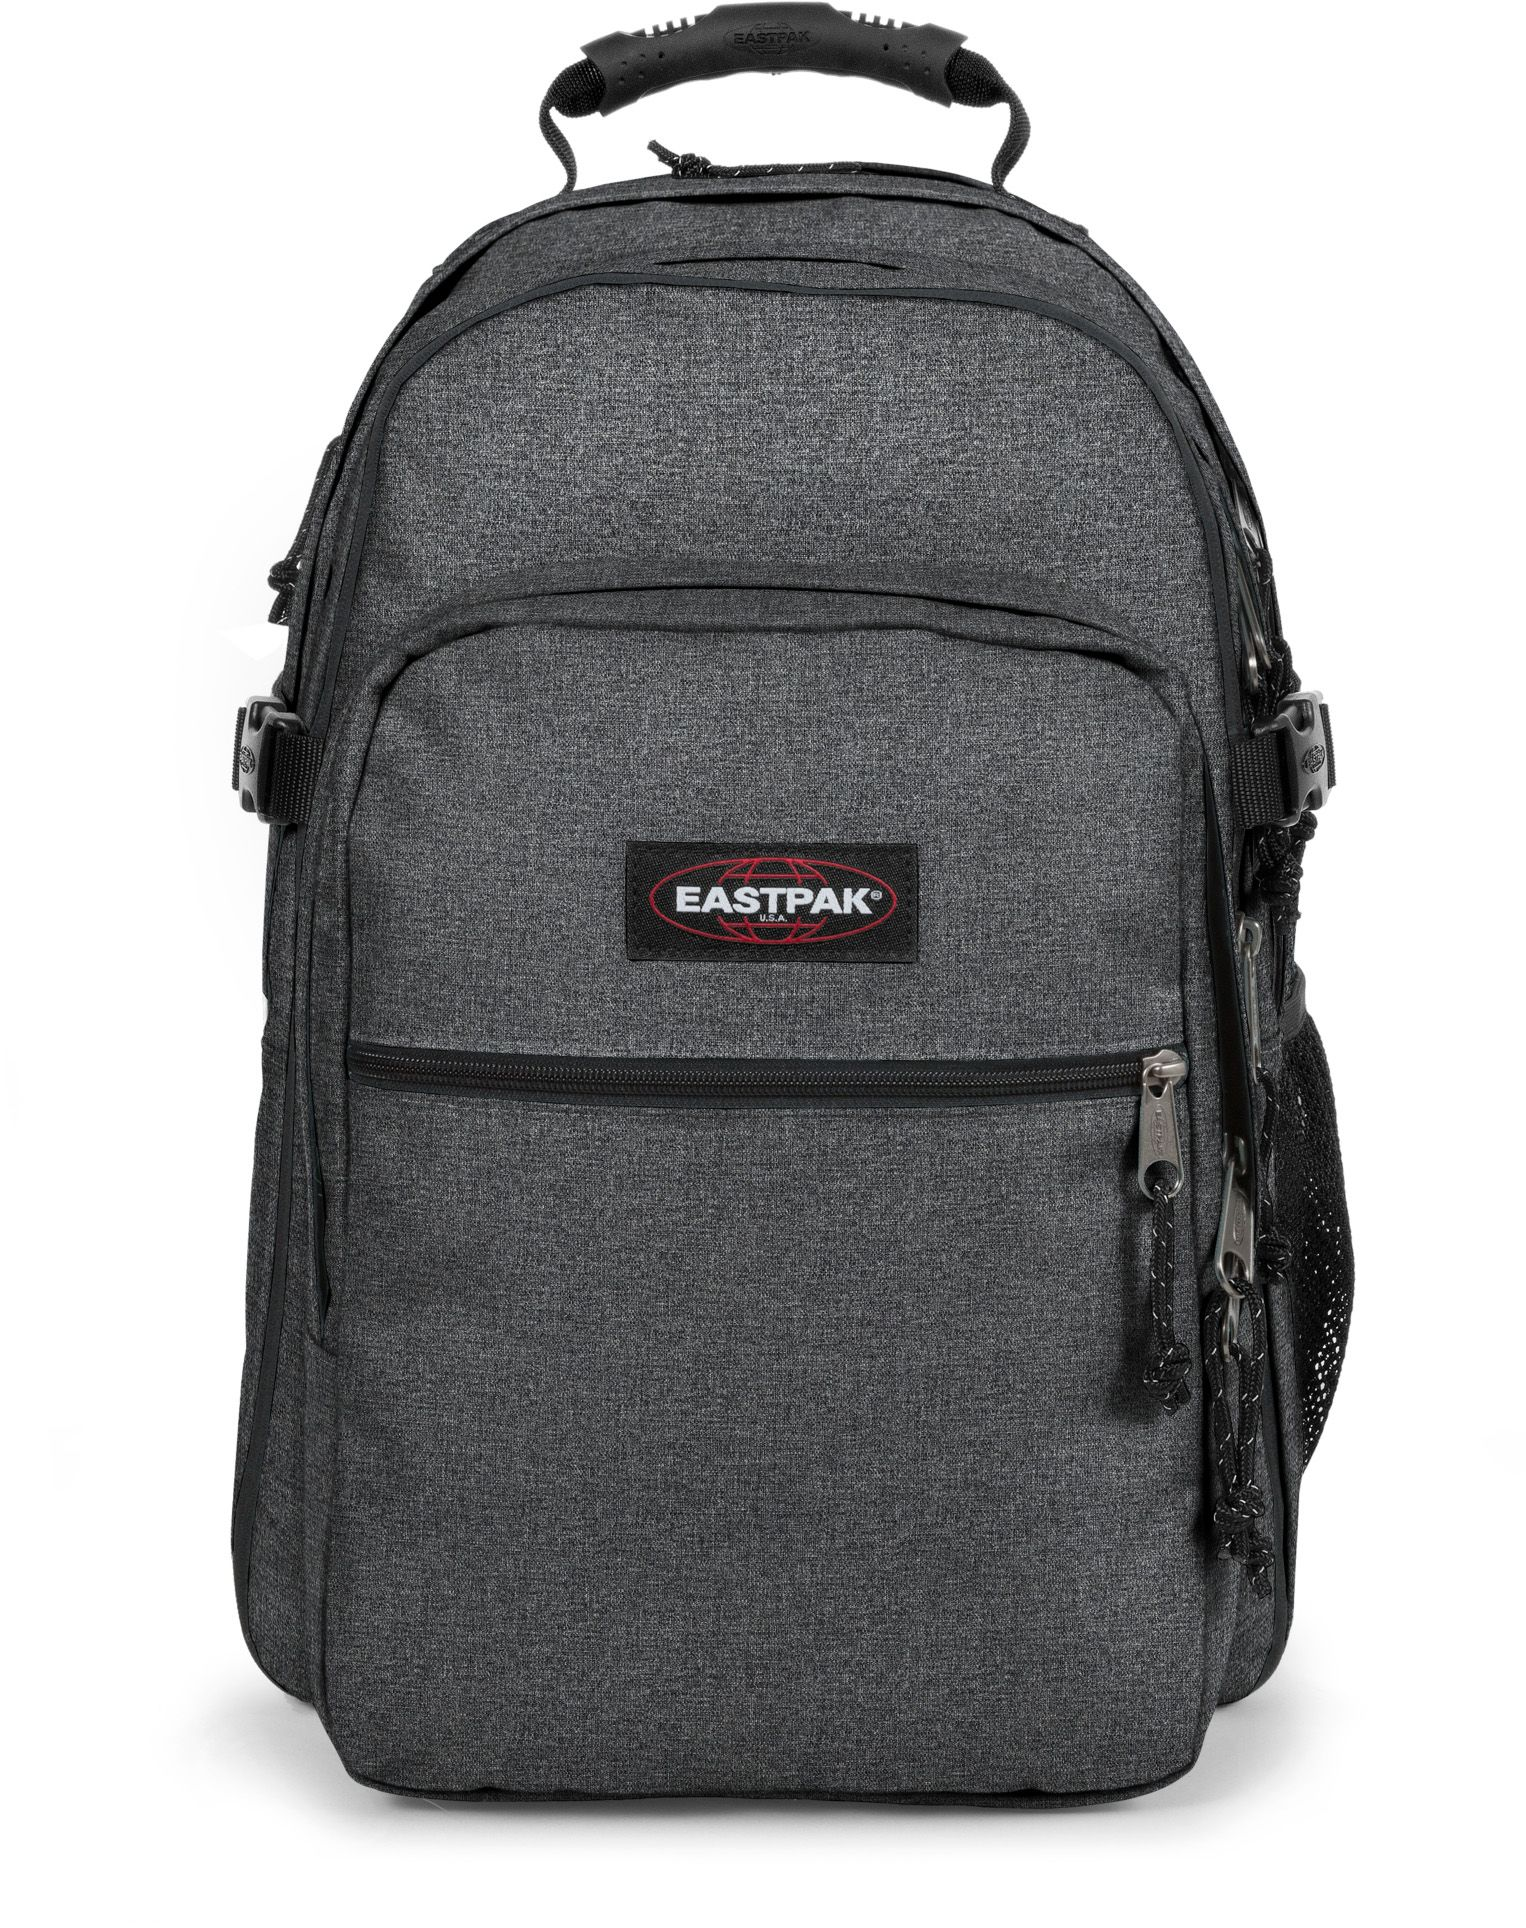 EASTPAK Eastpak Rucksack mit Laptopfach, »TUTOR black denim«